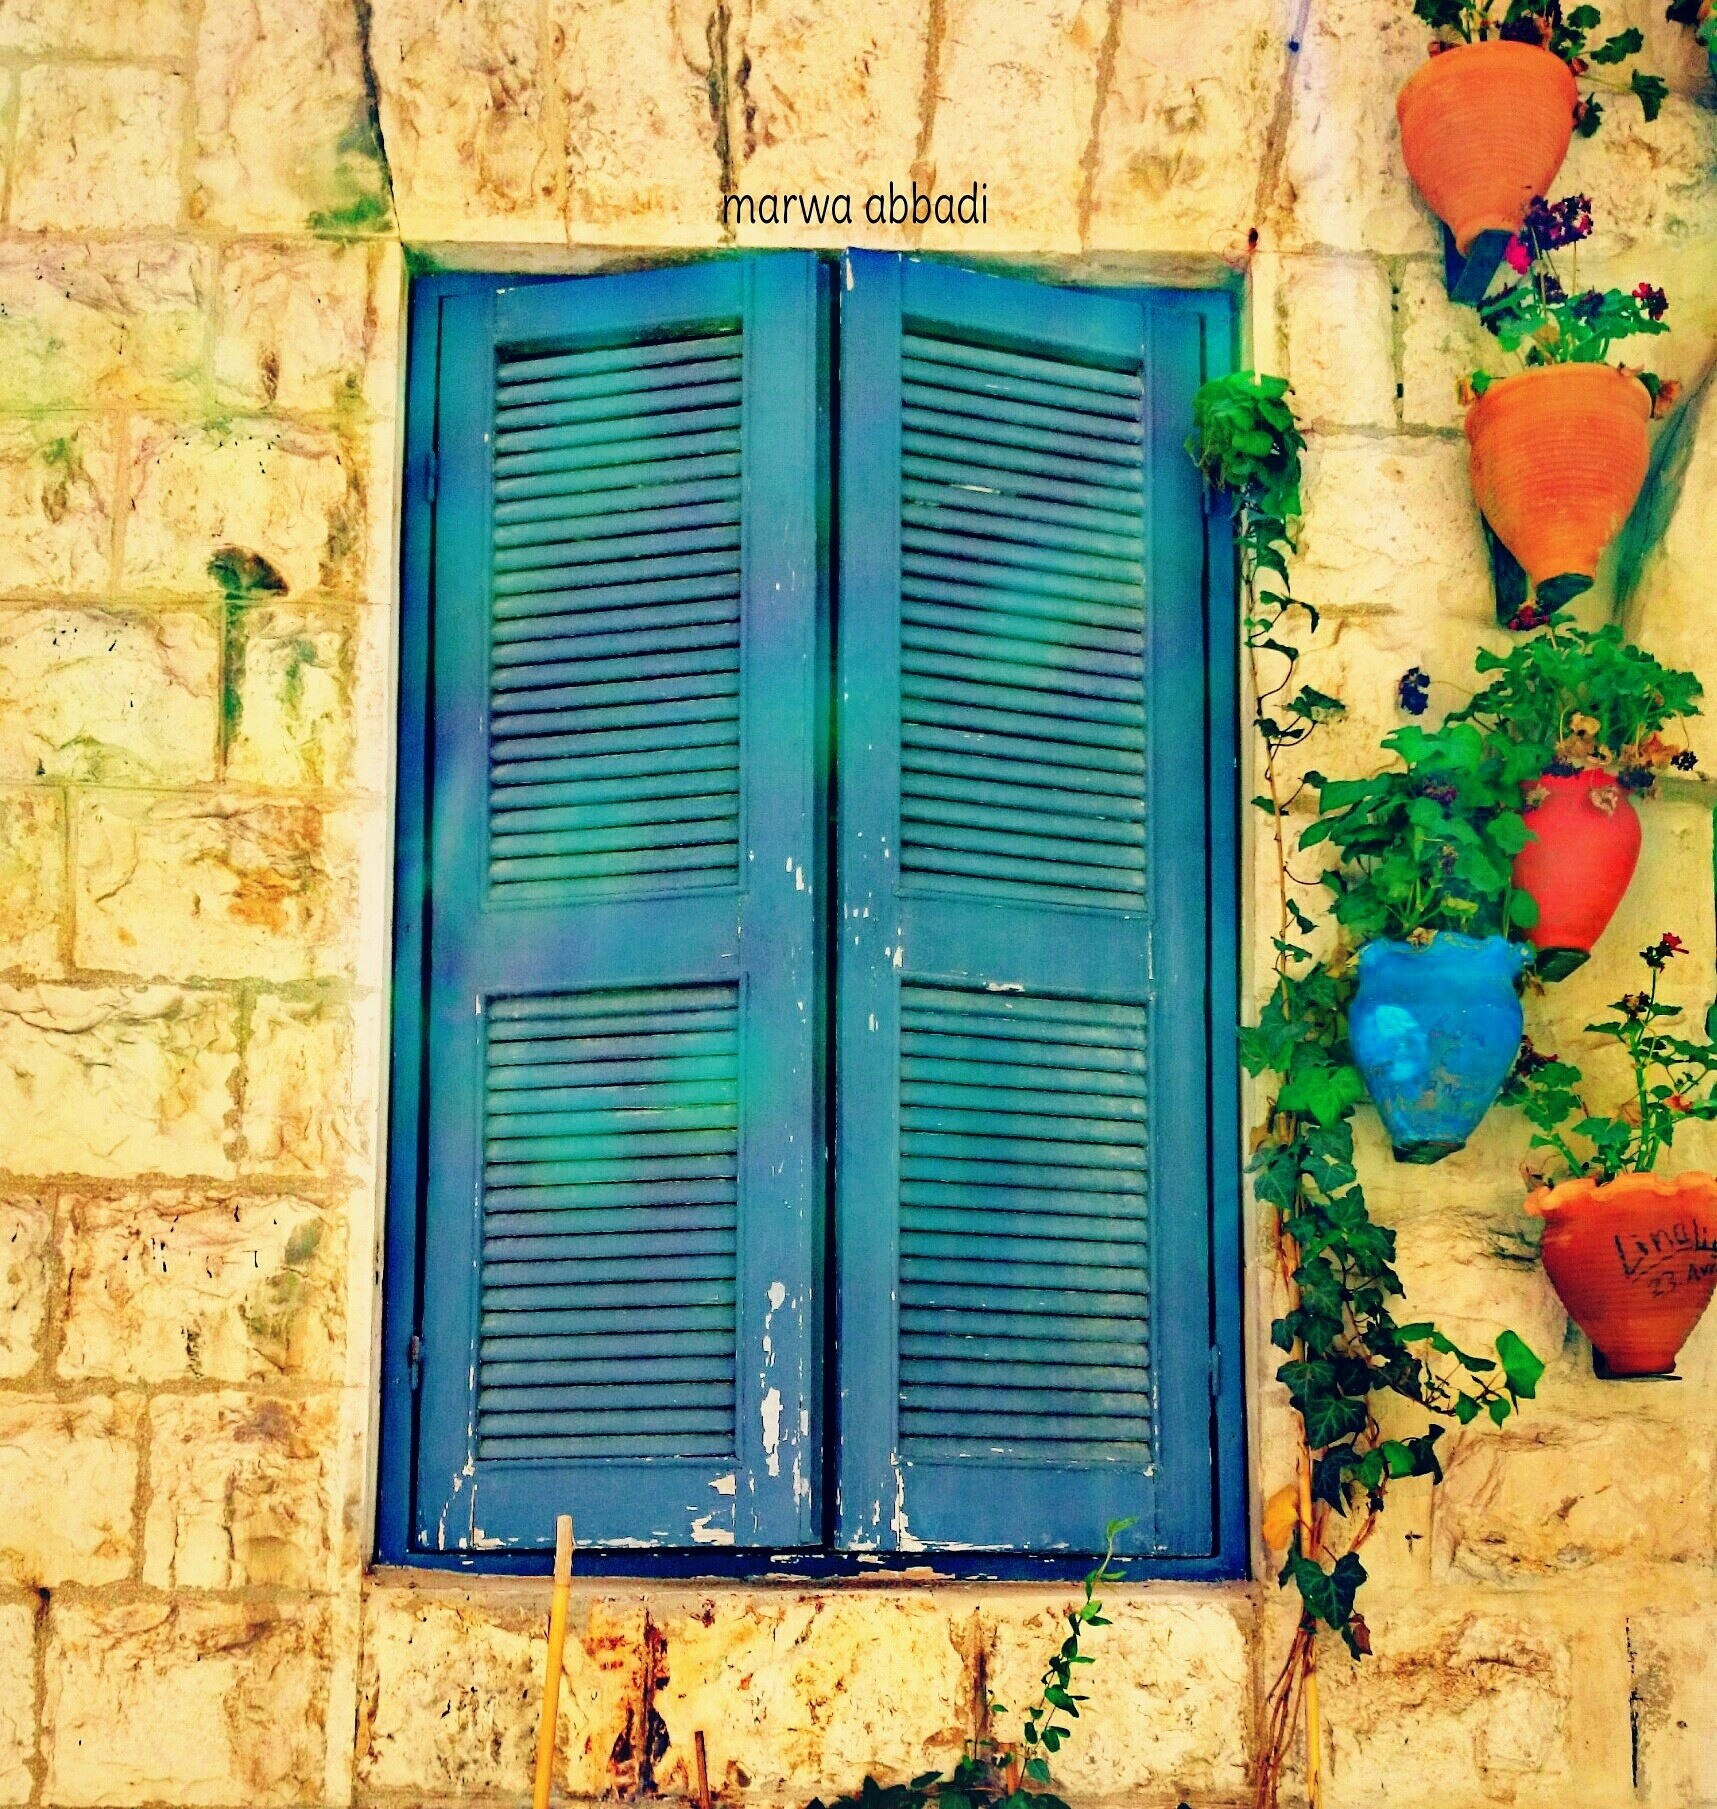 #blue #flower #jordan #love_jo #old_city by Marwa Orieq